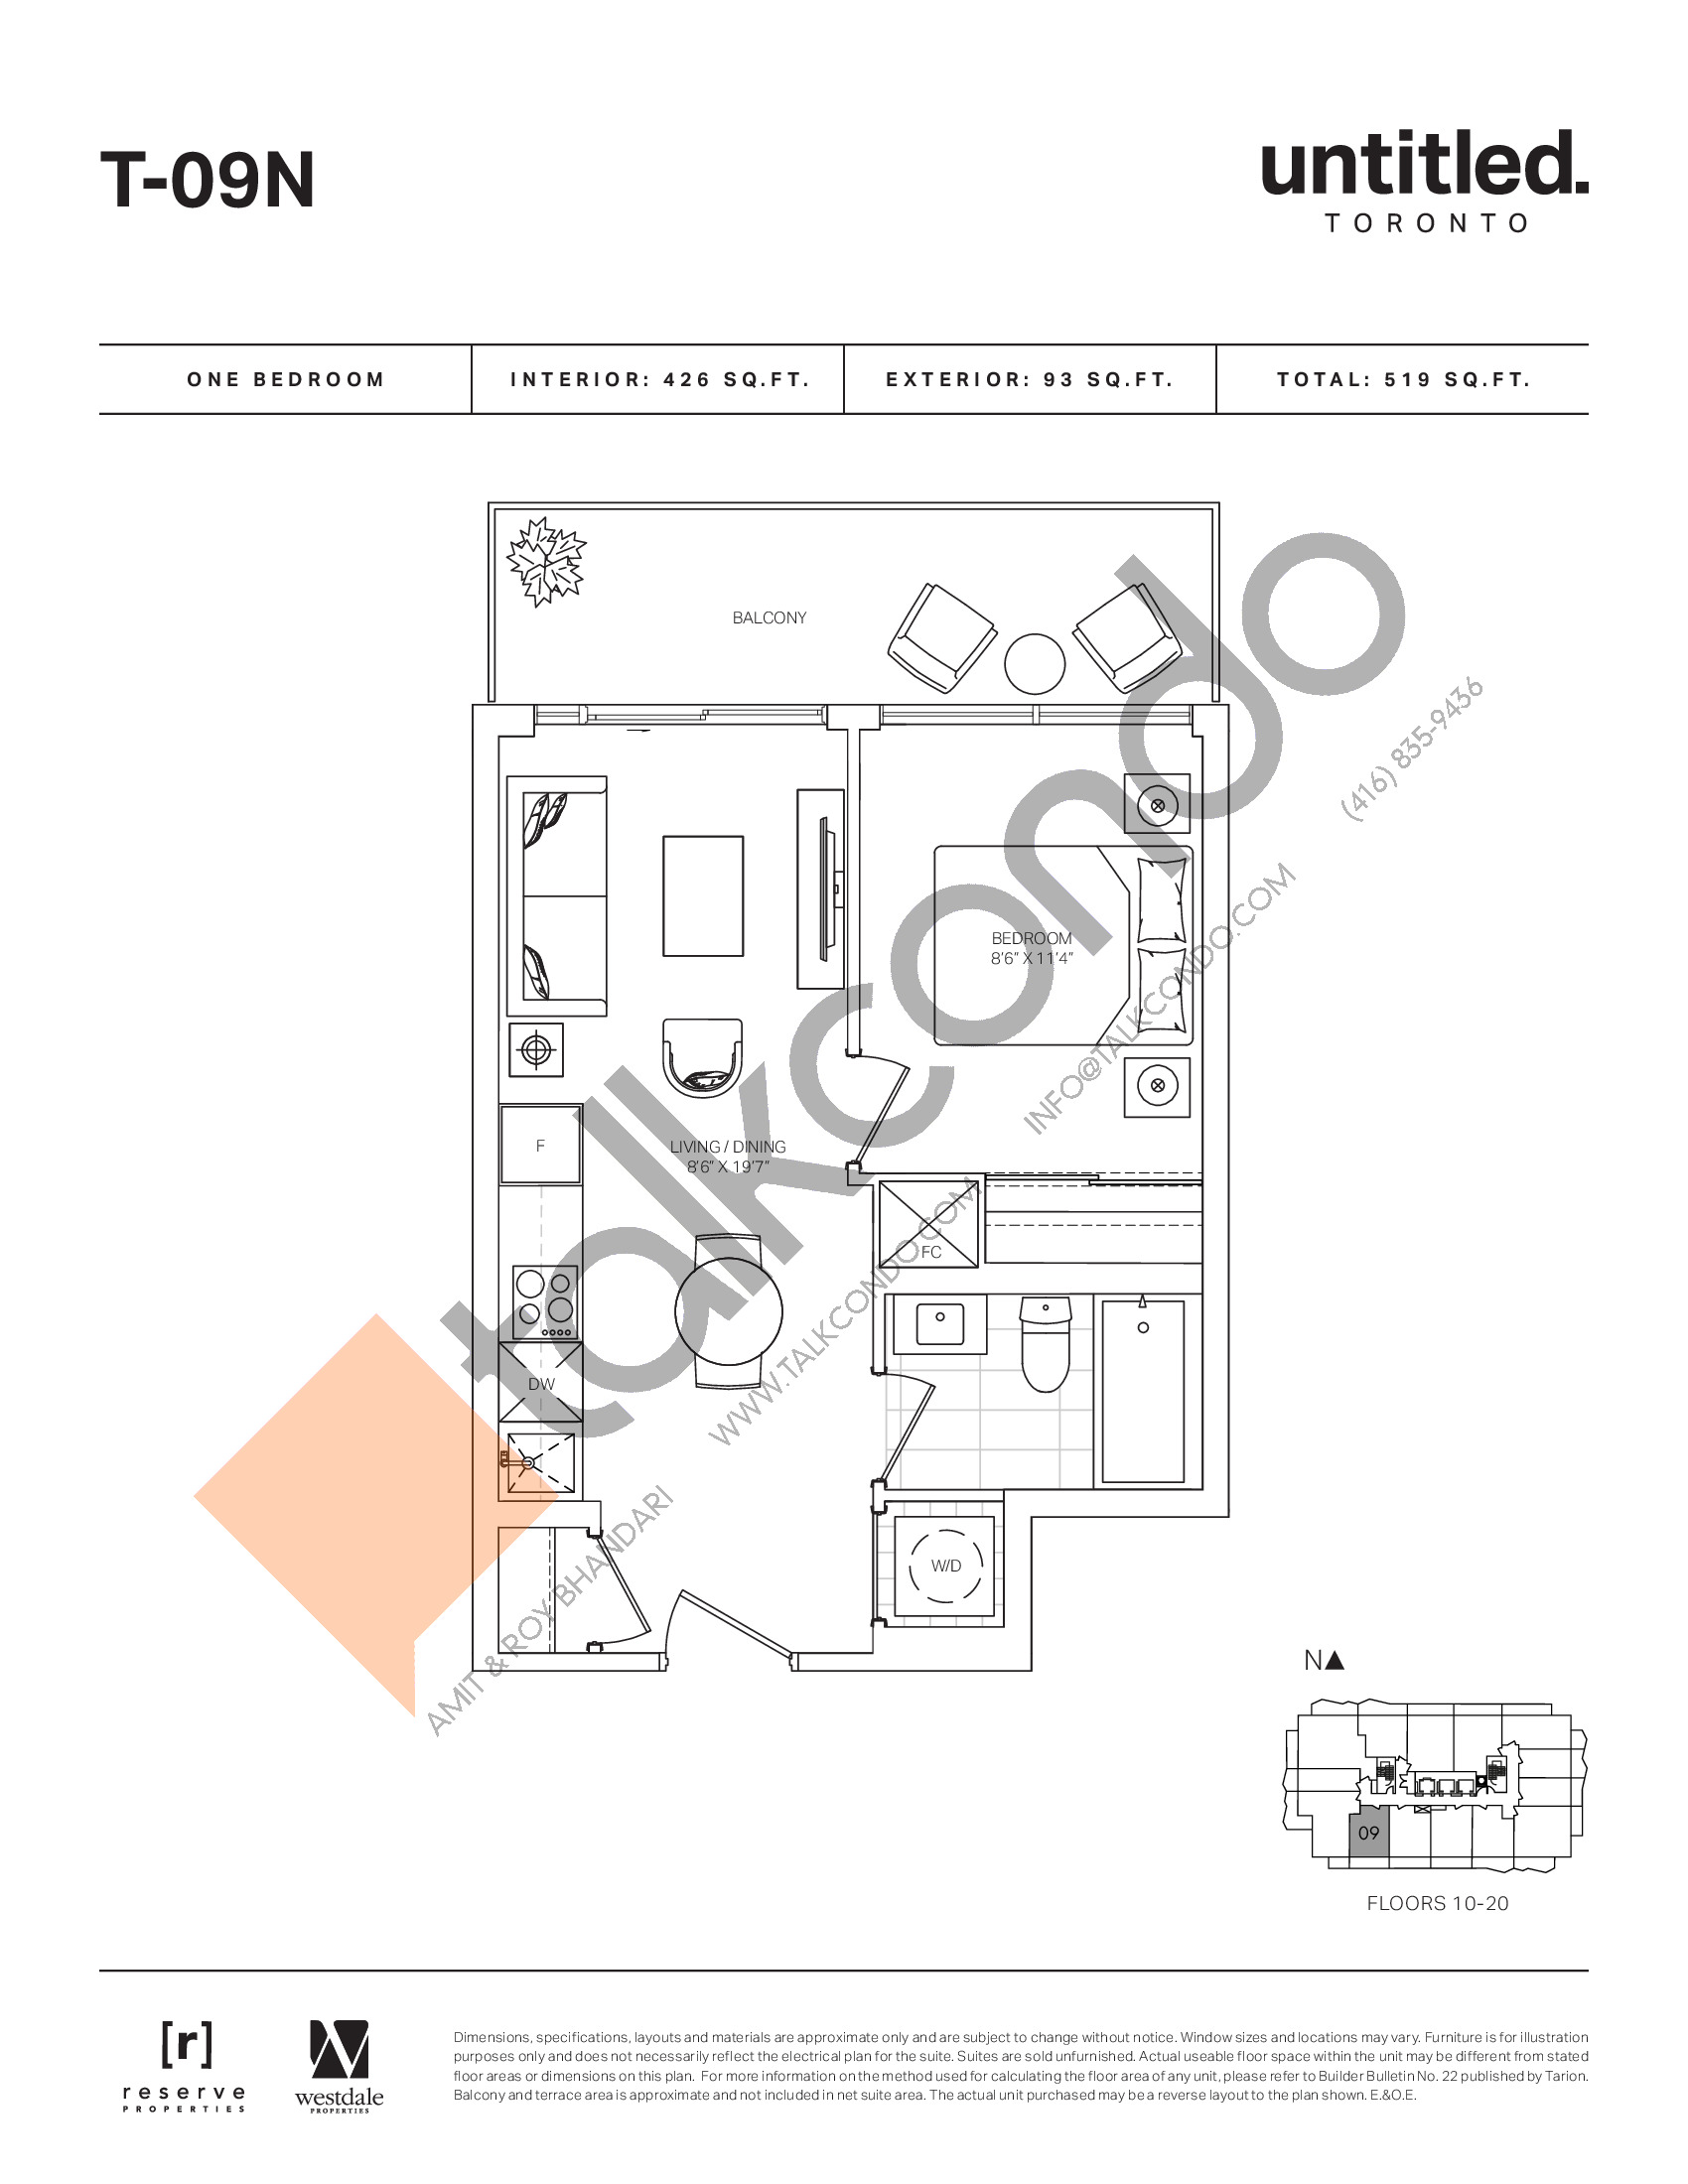 T-09N Floor Plan at Untitled North Tower Condos - 426 sq.ft